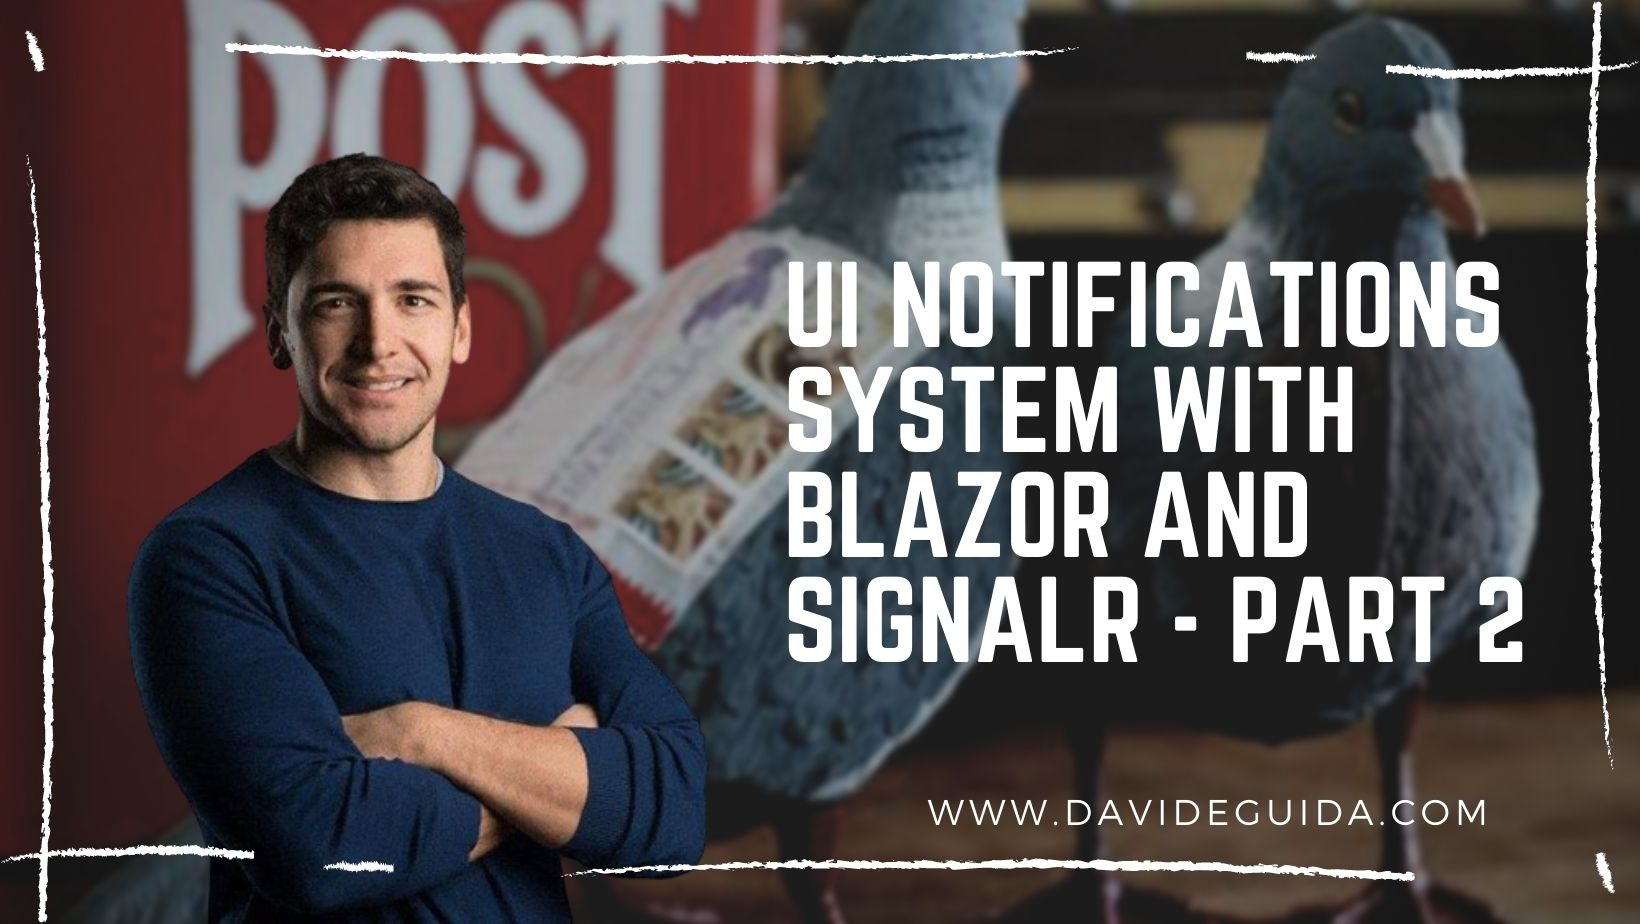 UI notifications system with Blazor and SignalR - part 2